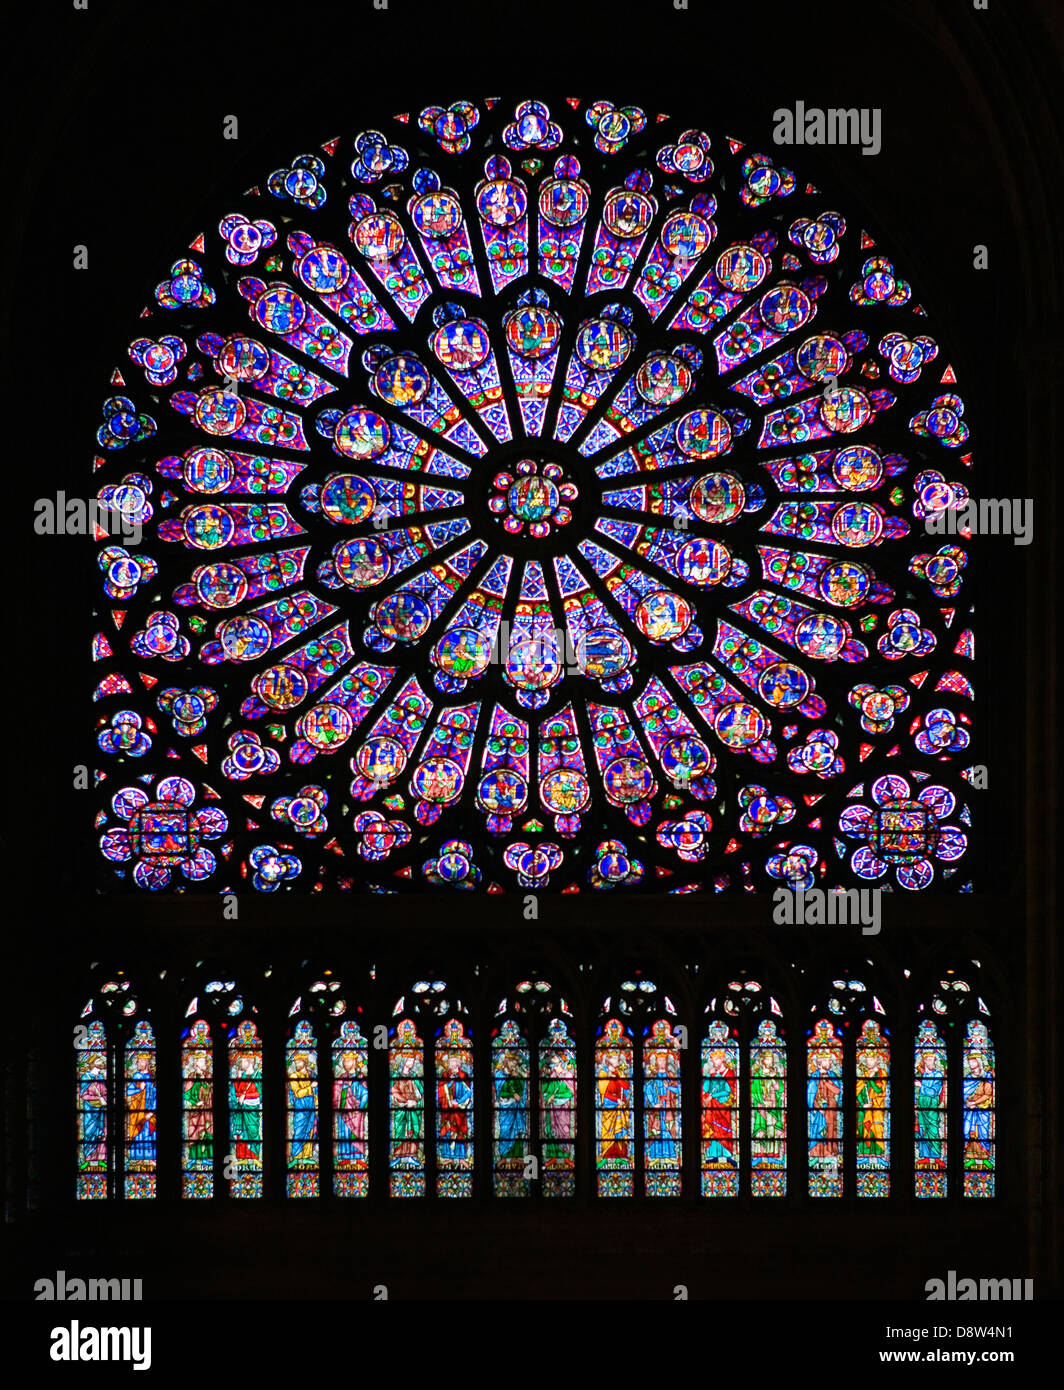 north transept rose window notre dame cathedral paris france stock photo royalty free image. Black Bedroom Furniture Sets. Home Design Ideas